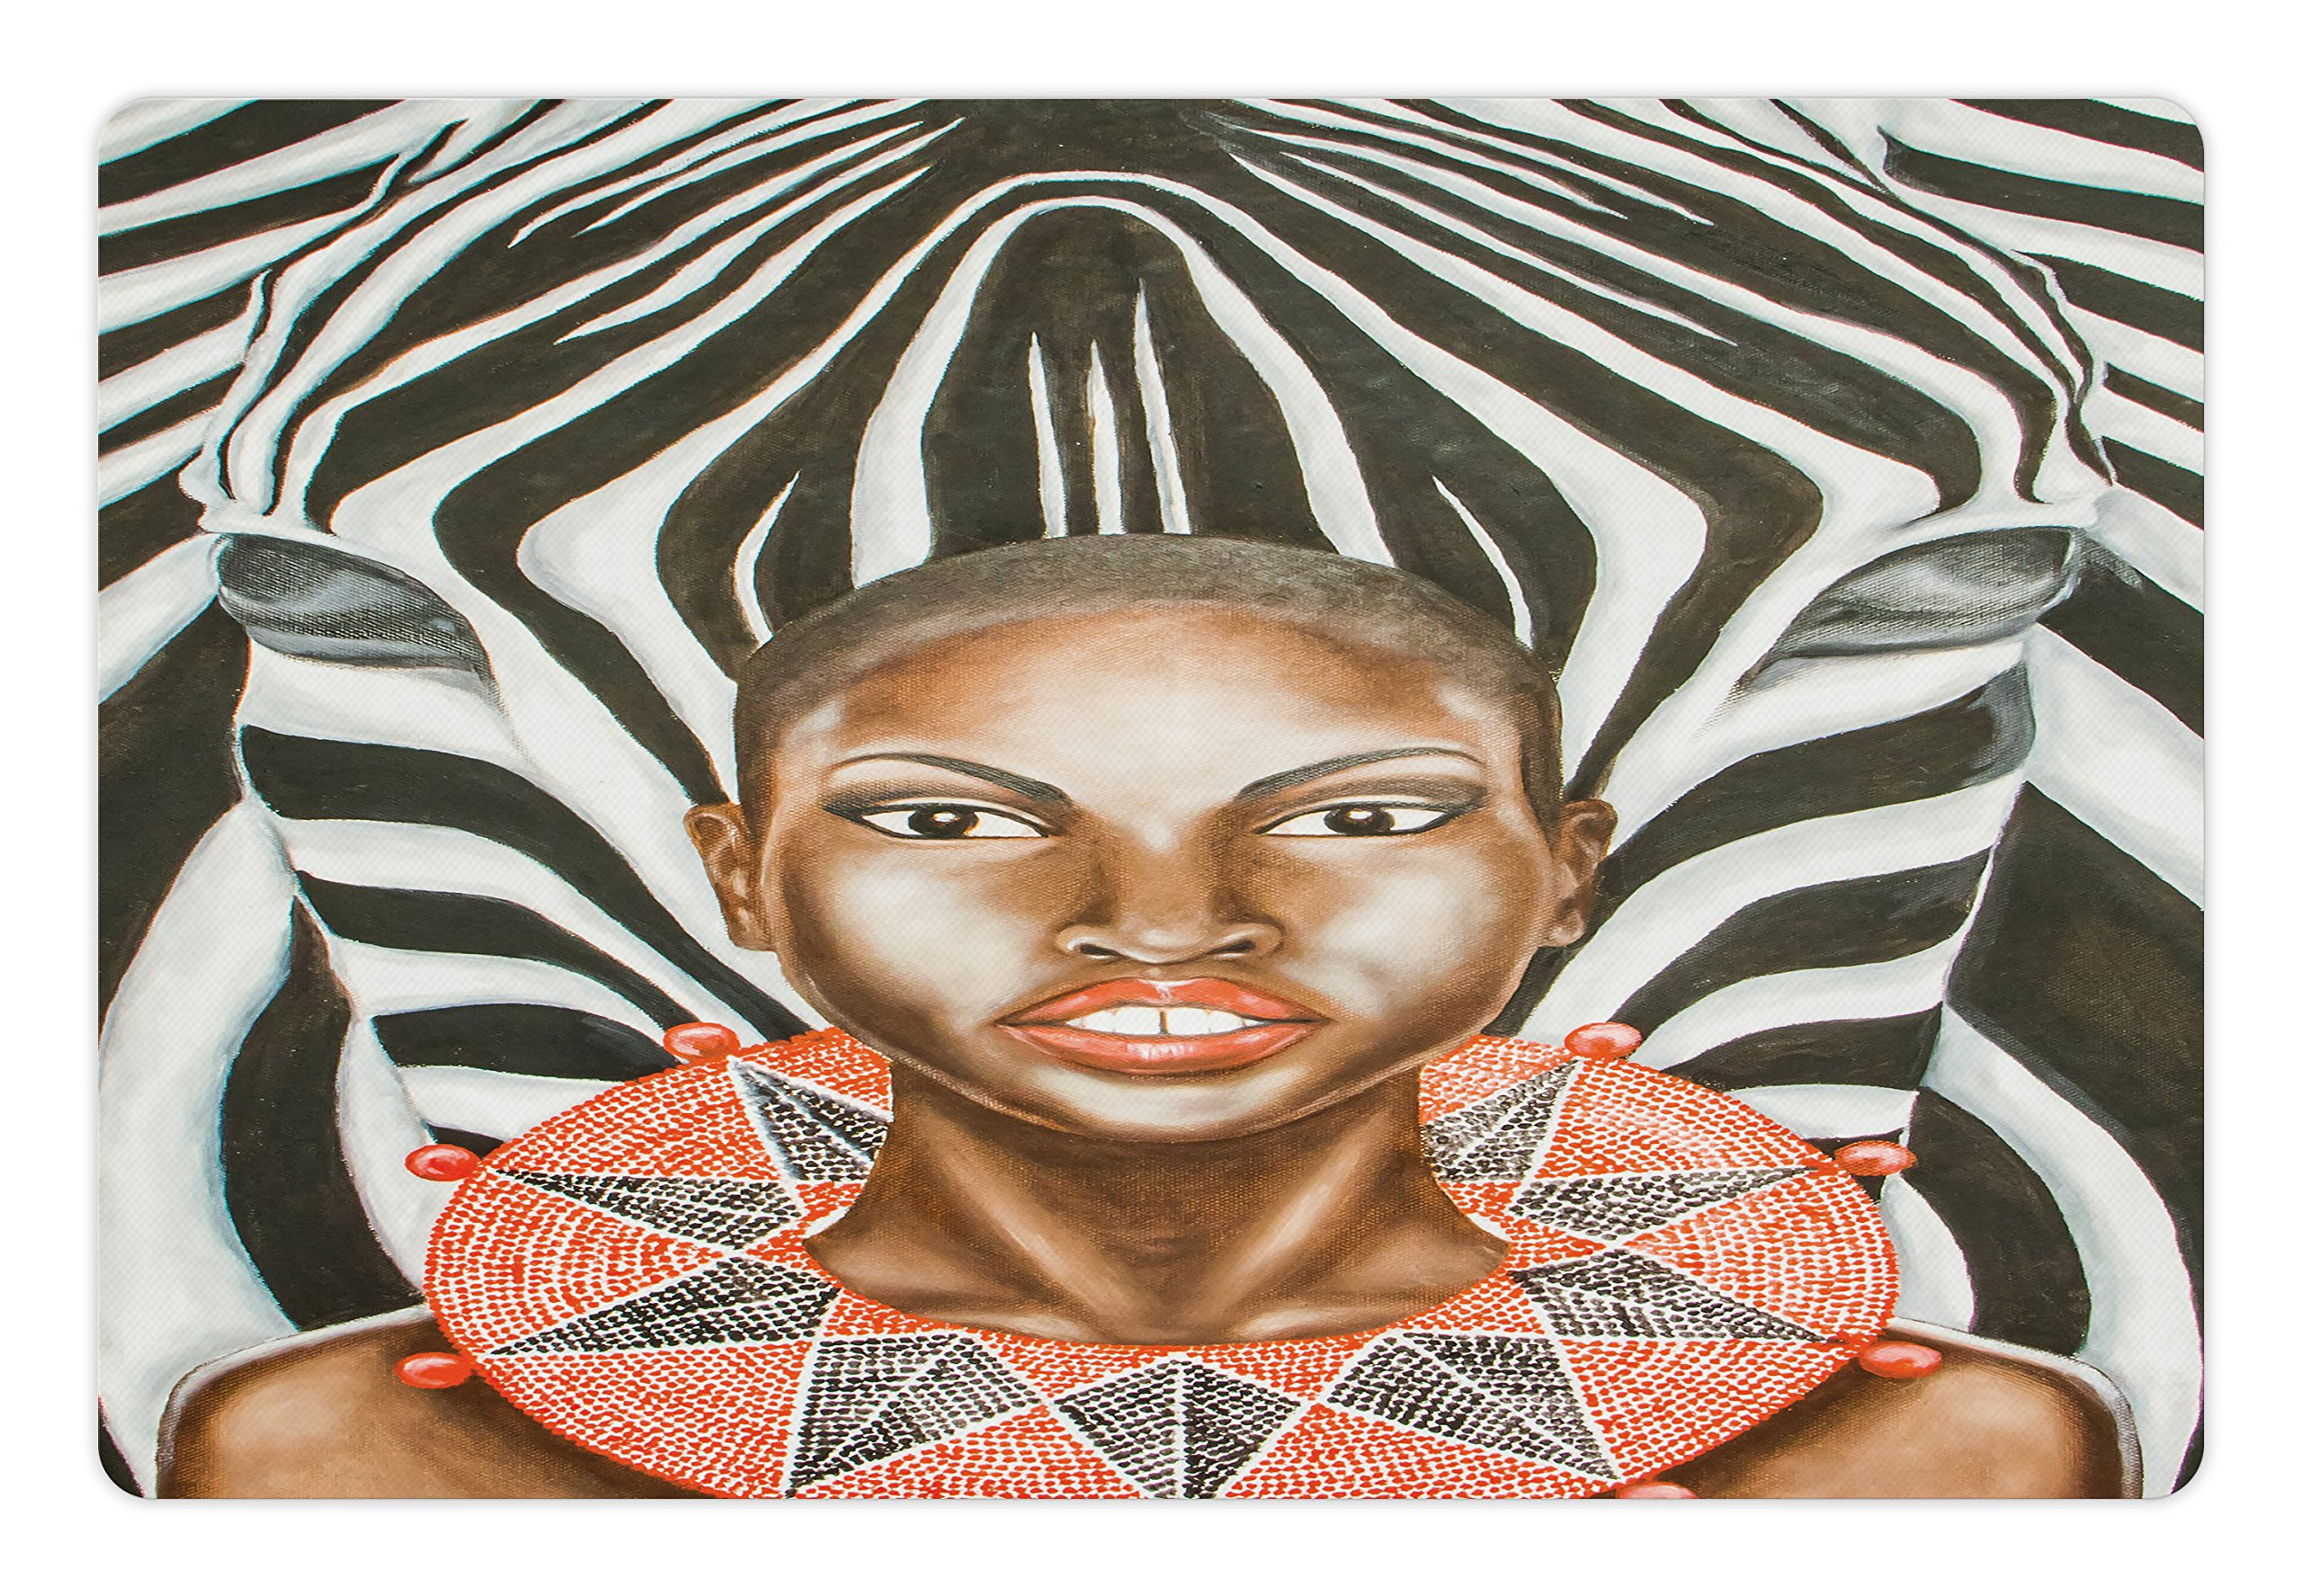 Lunarable Country Pet Mat for Food and Water, African Woman with Zebra Spirit Animal Mother Nature Themed Artistic Image, Rectangle Non-Slip Rubber Mat for Dogs and Cats, Orange Light Caramel